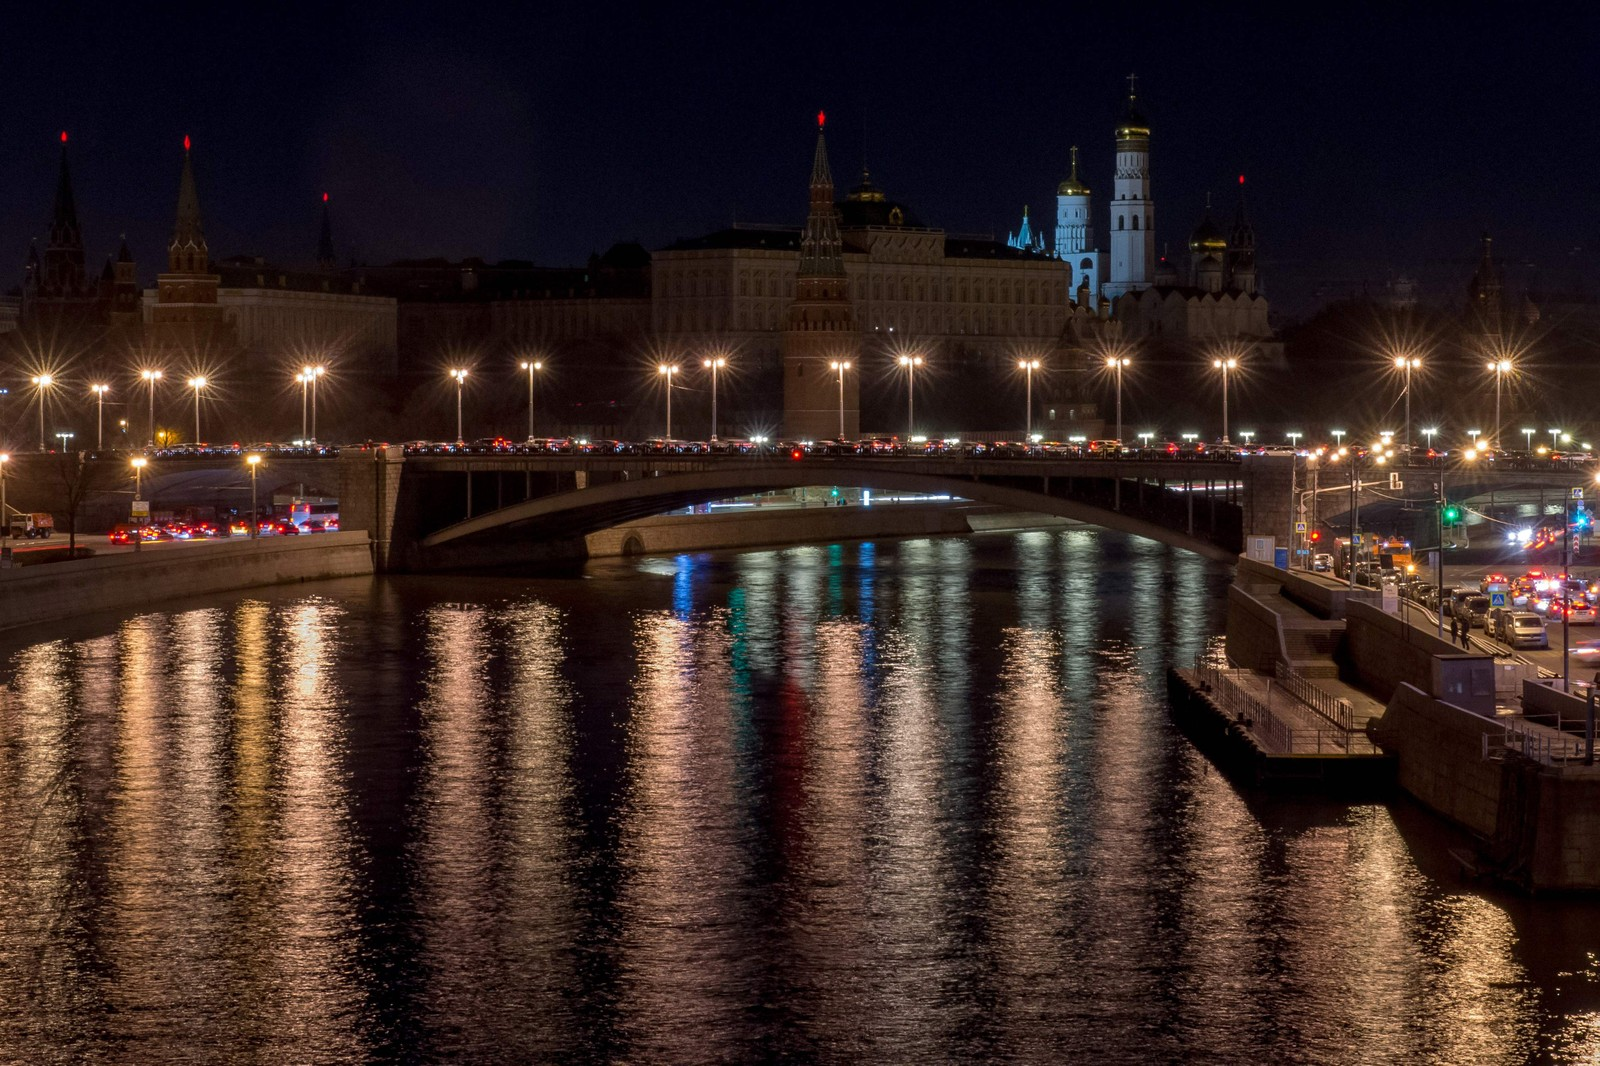 Kreml i Moskva i Russland under Earth Hour.